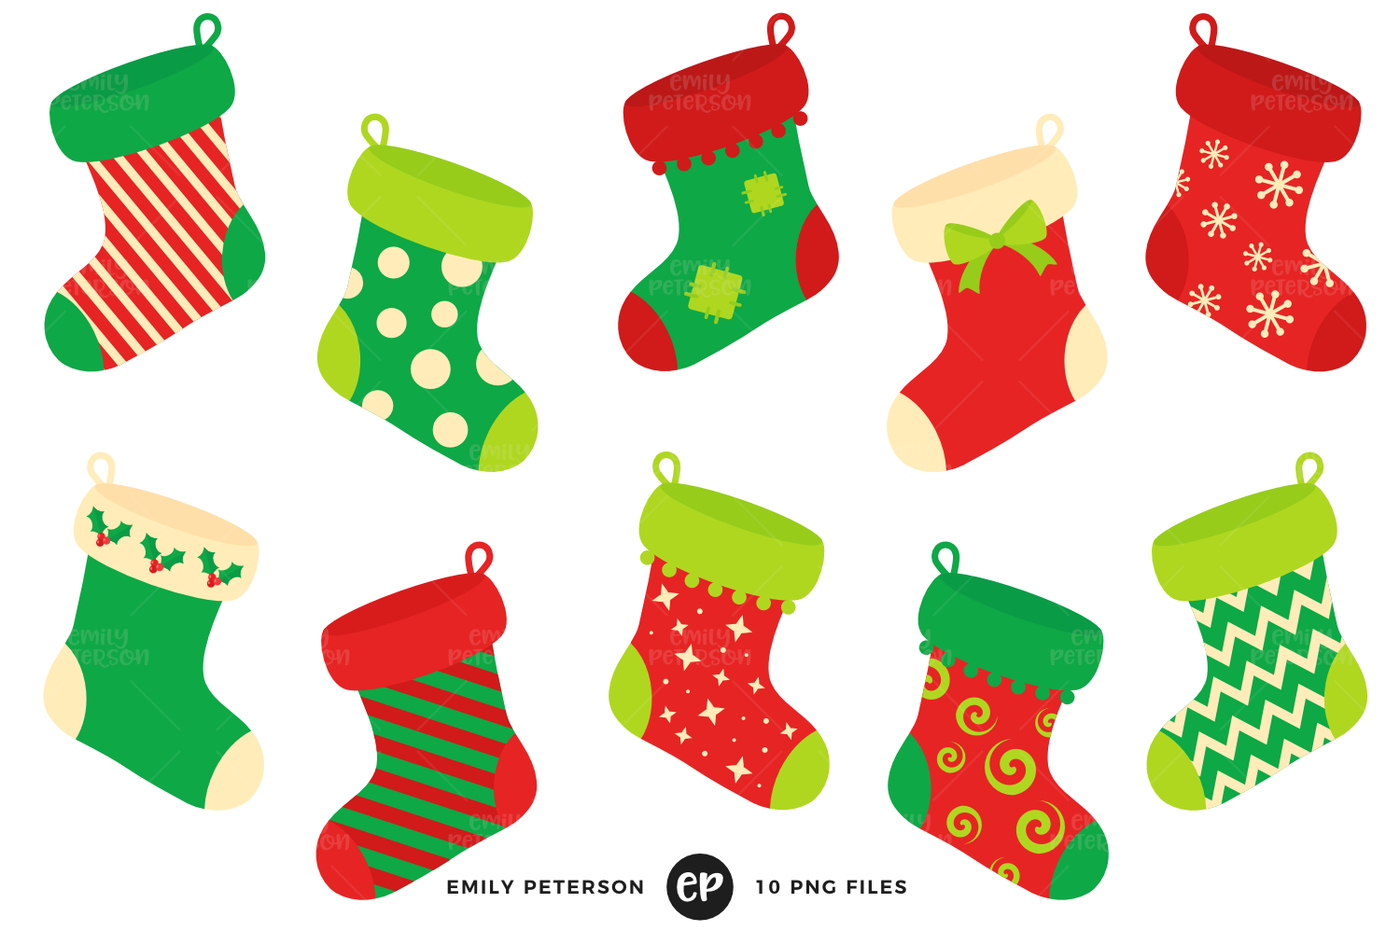 Christmas Stocking Clipart.Stockings Christmas Clipart